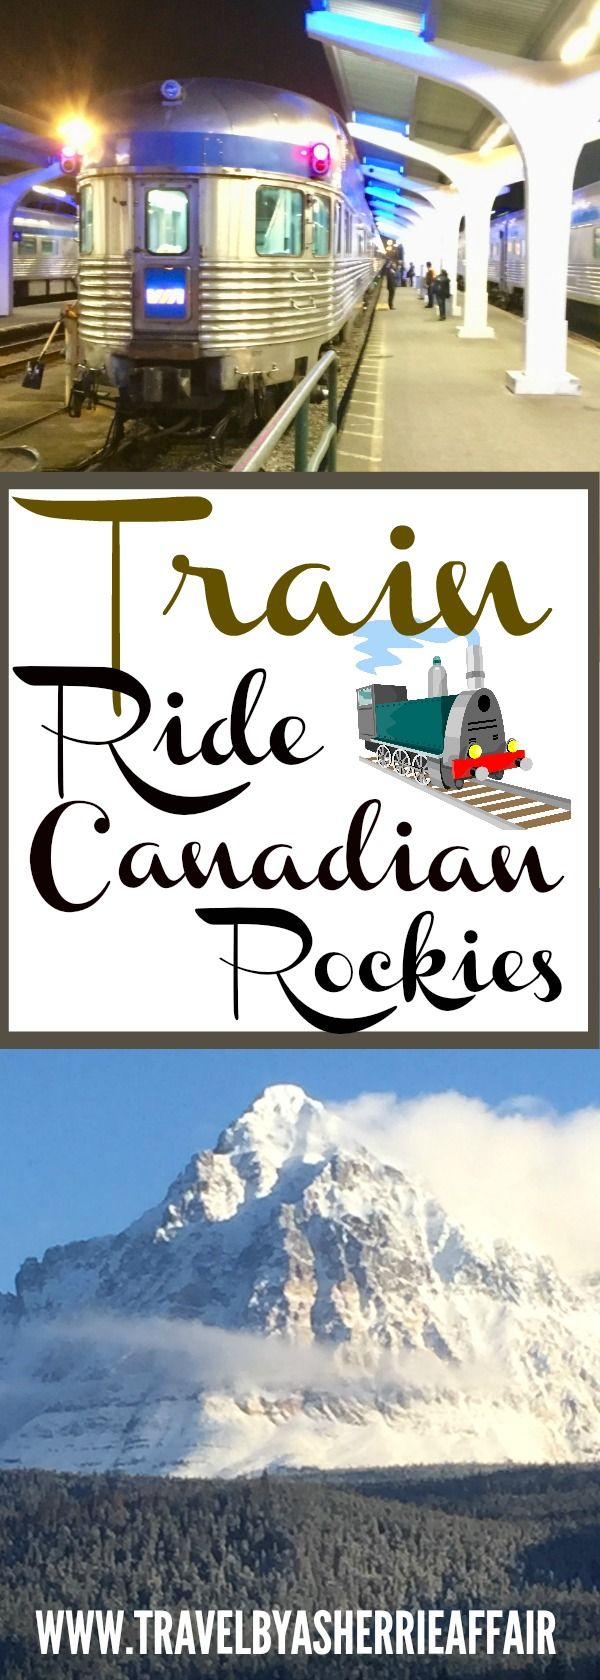 Gift of travel: Mother-Daughter-Canadian Rockies Train ride!